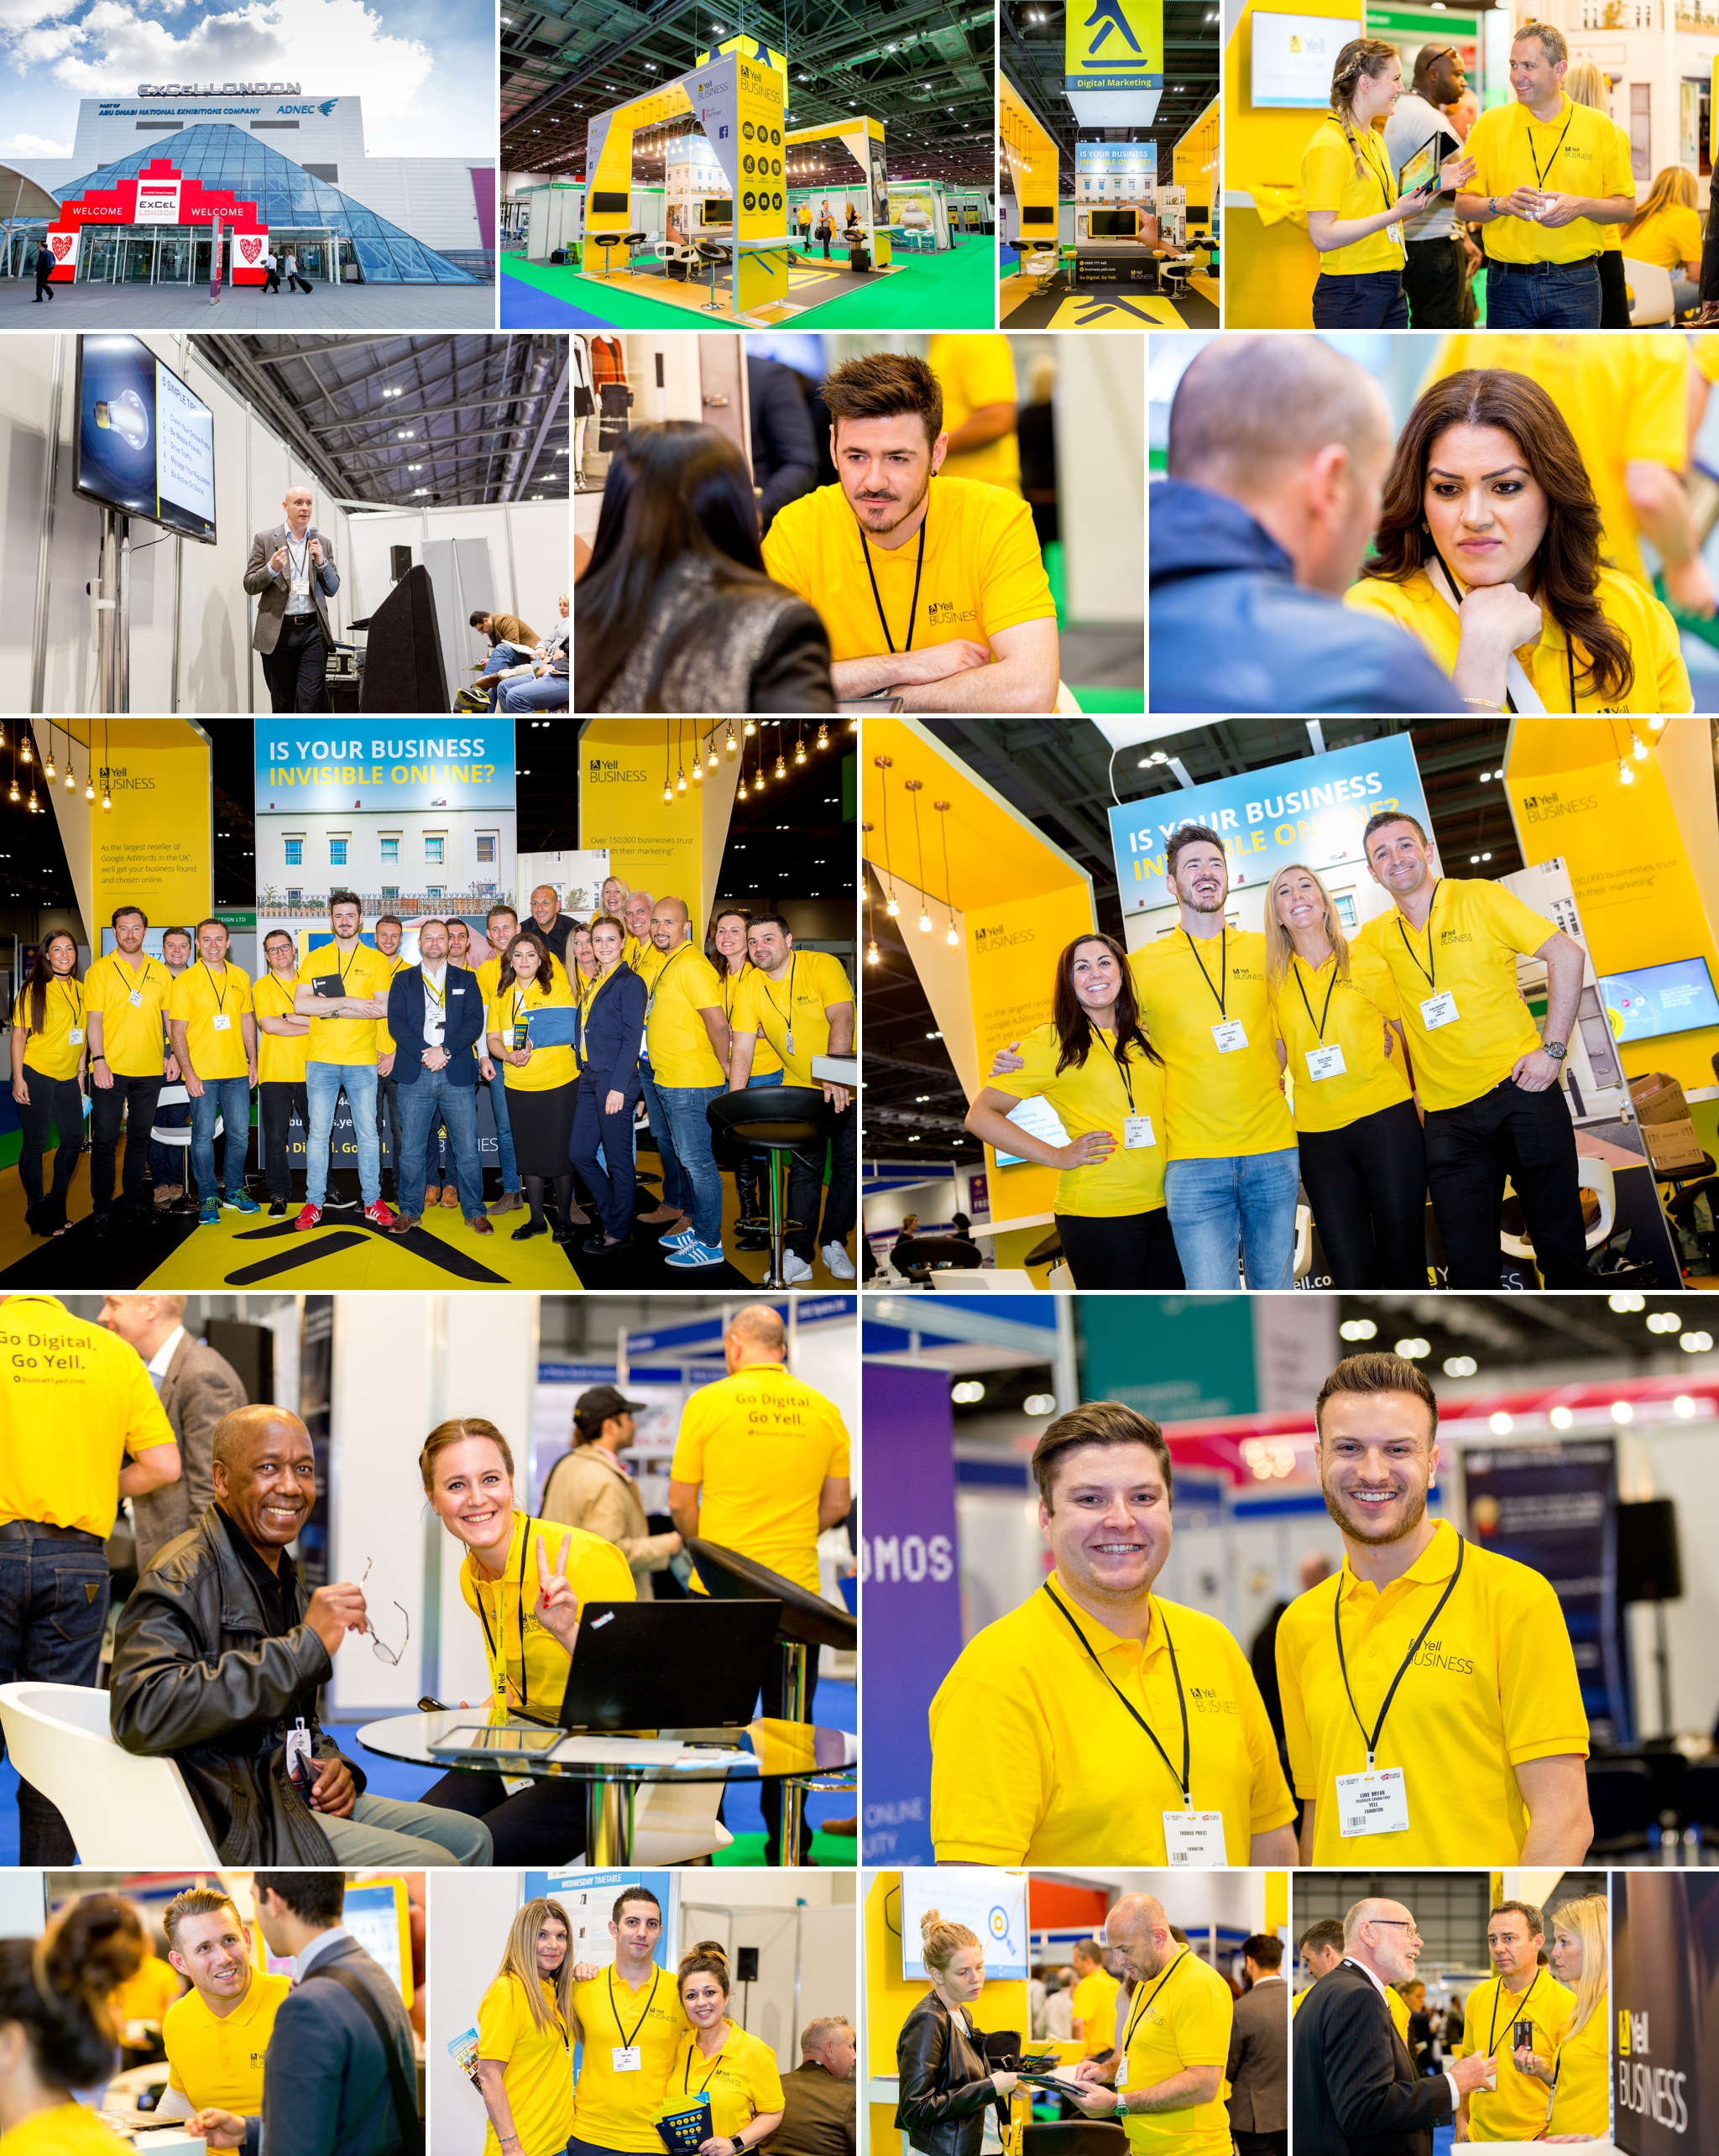 TBS 2017 - Business Show Excel London